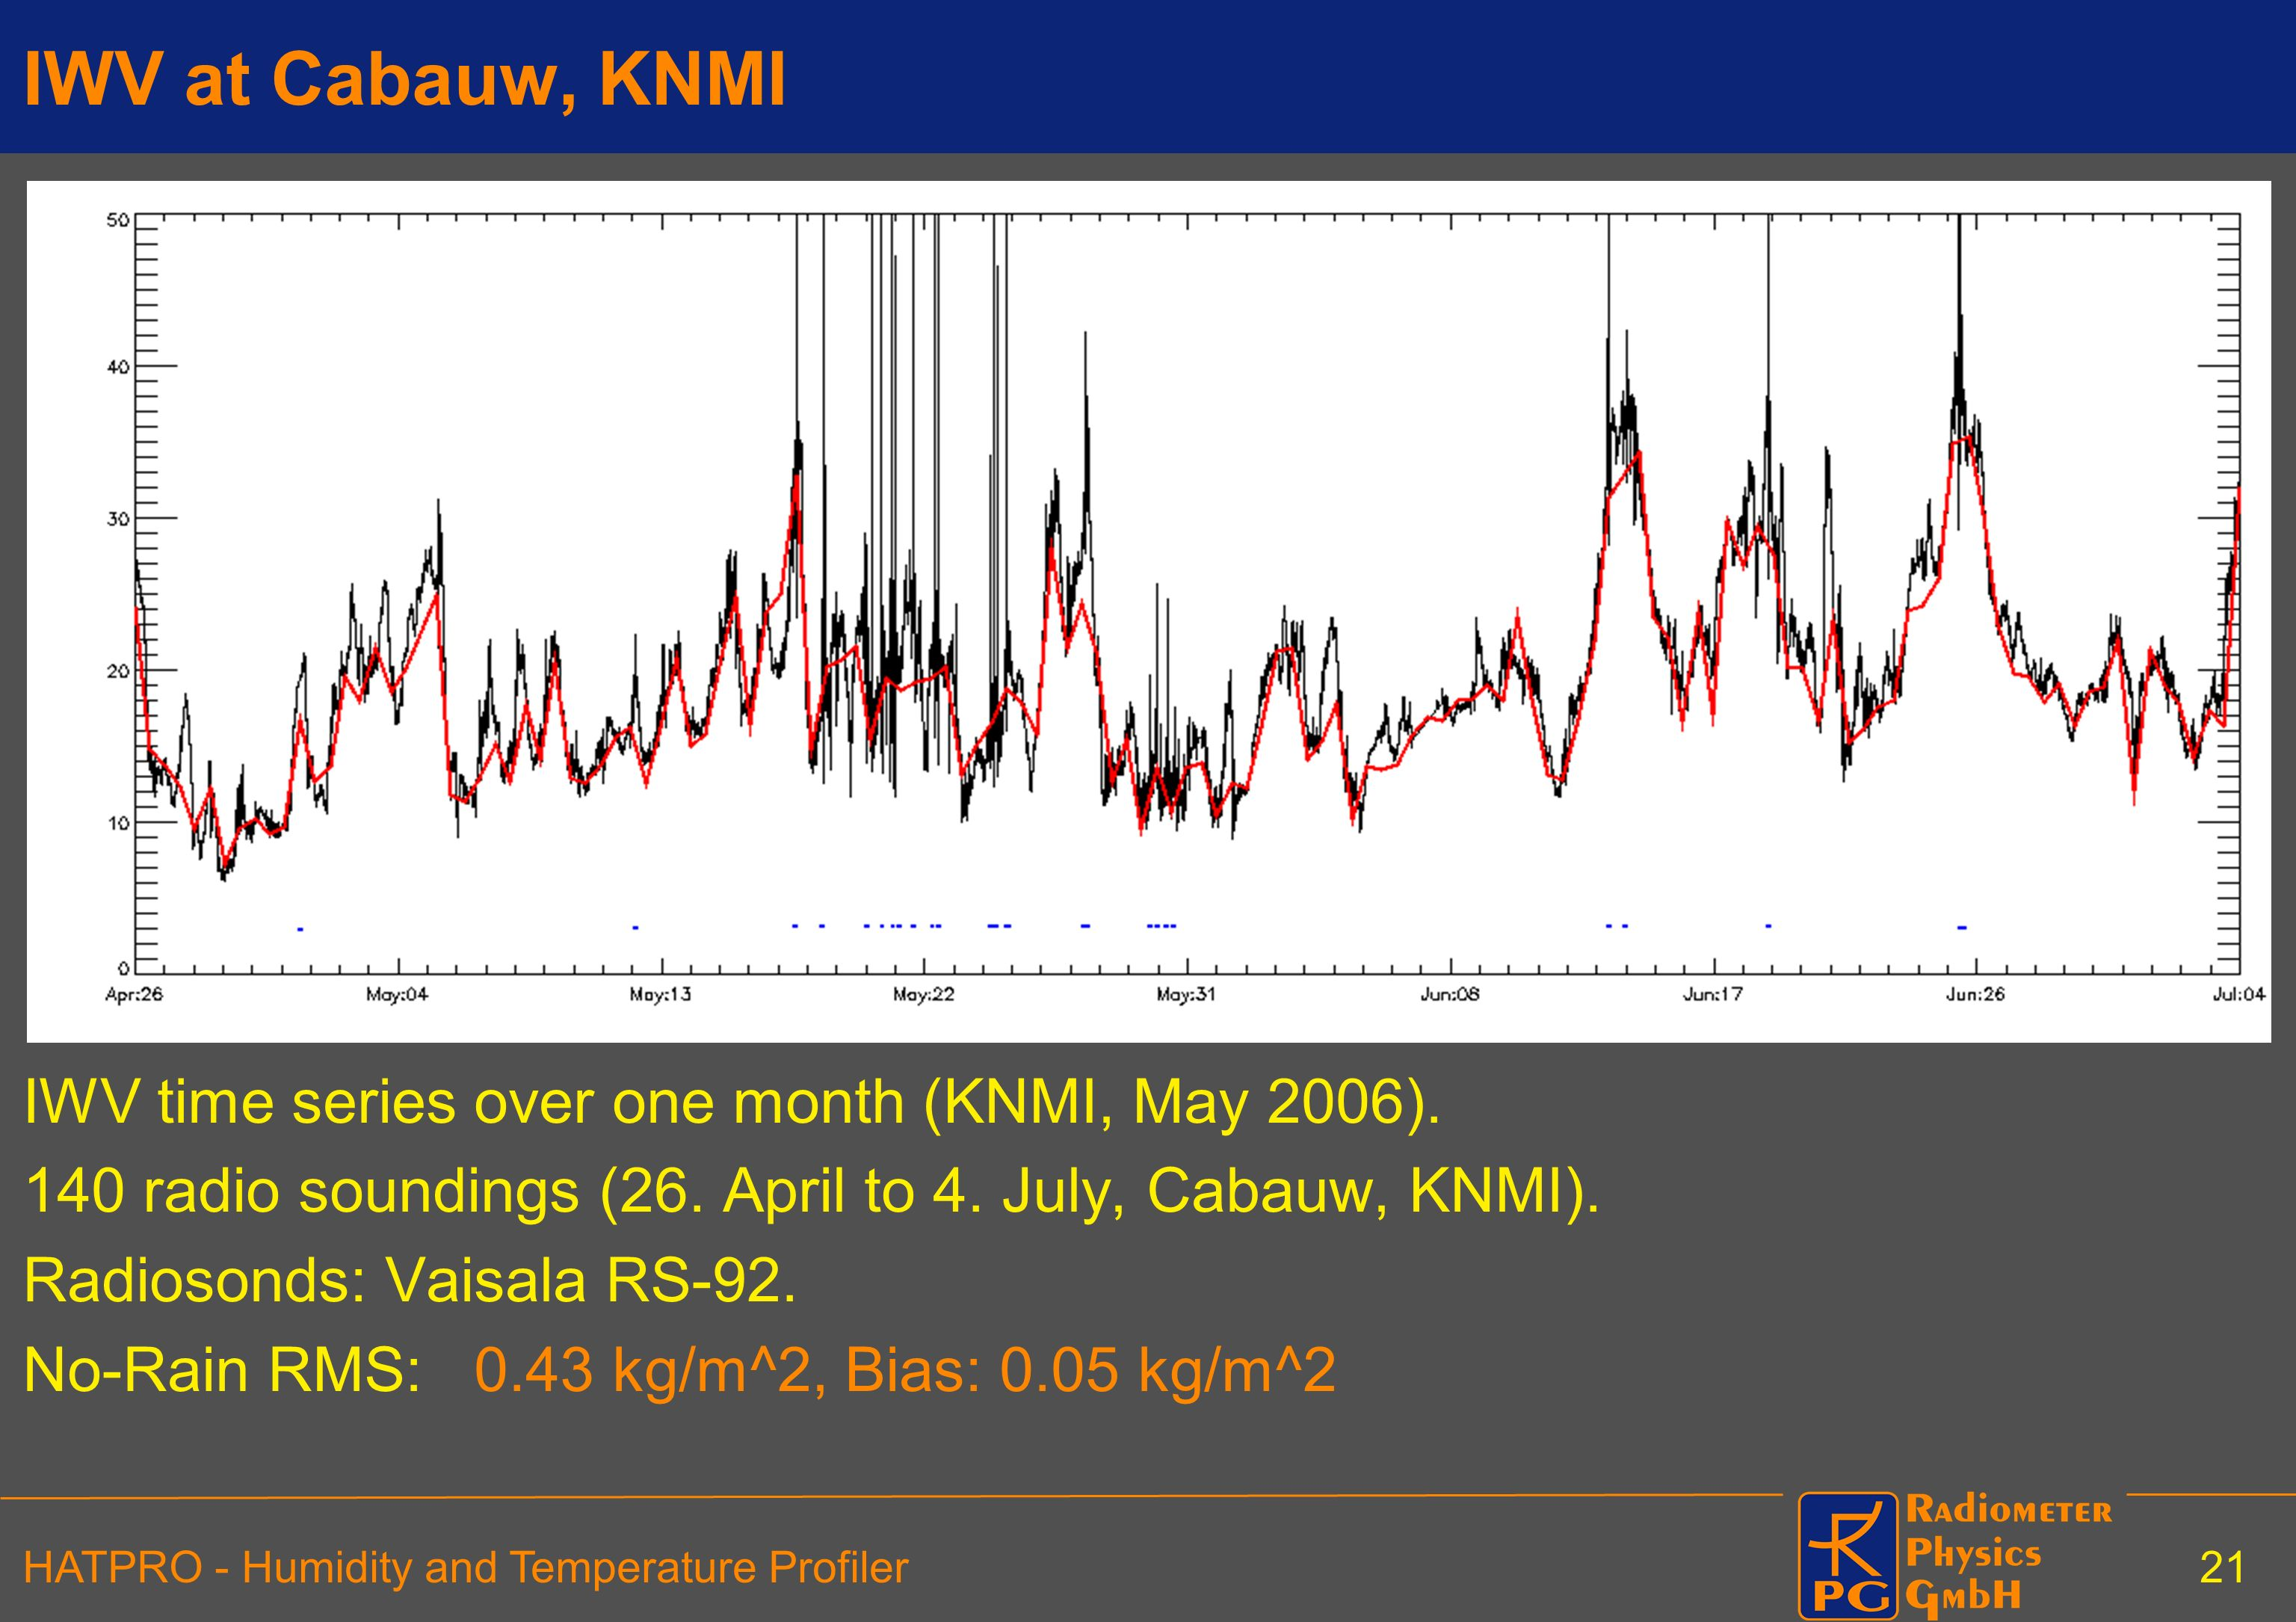 IWV at Cabauw, KNMI IWV time series over one month (KNMI, May 2006).